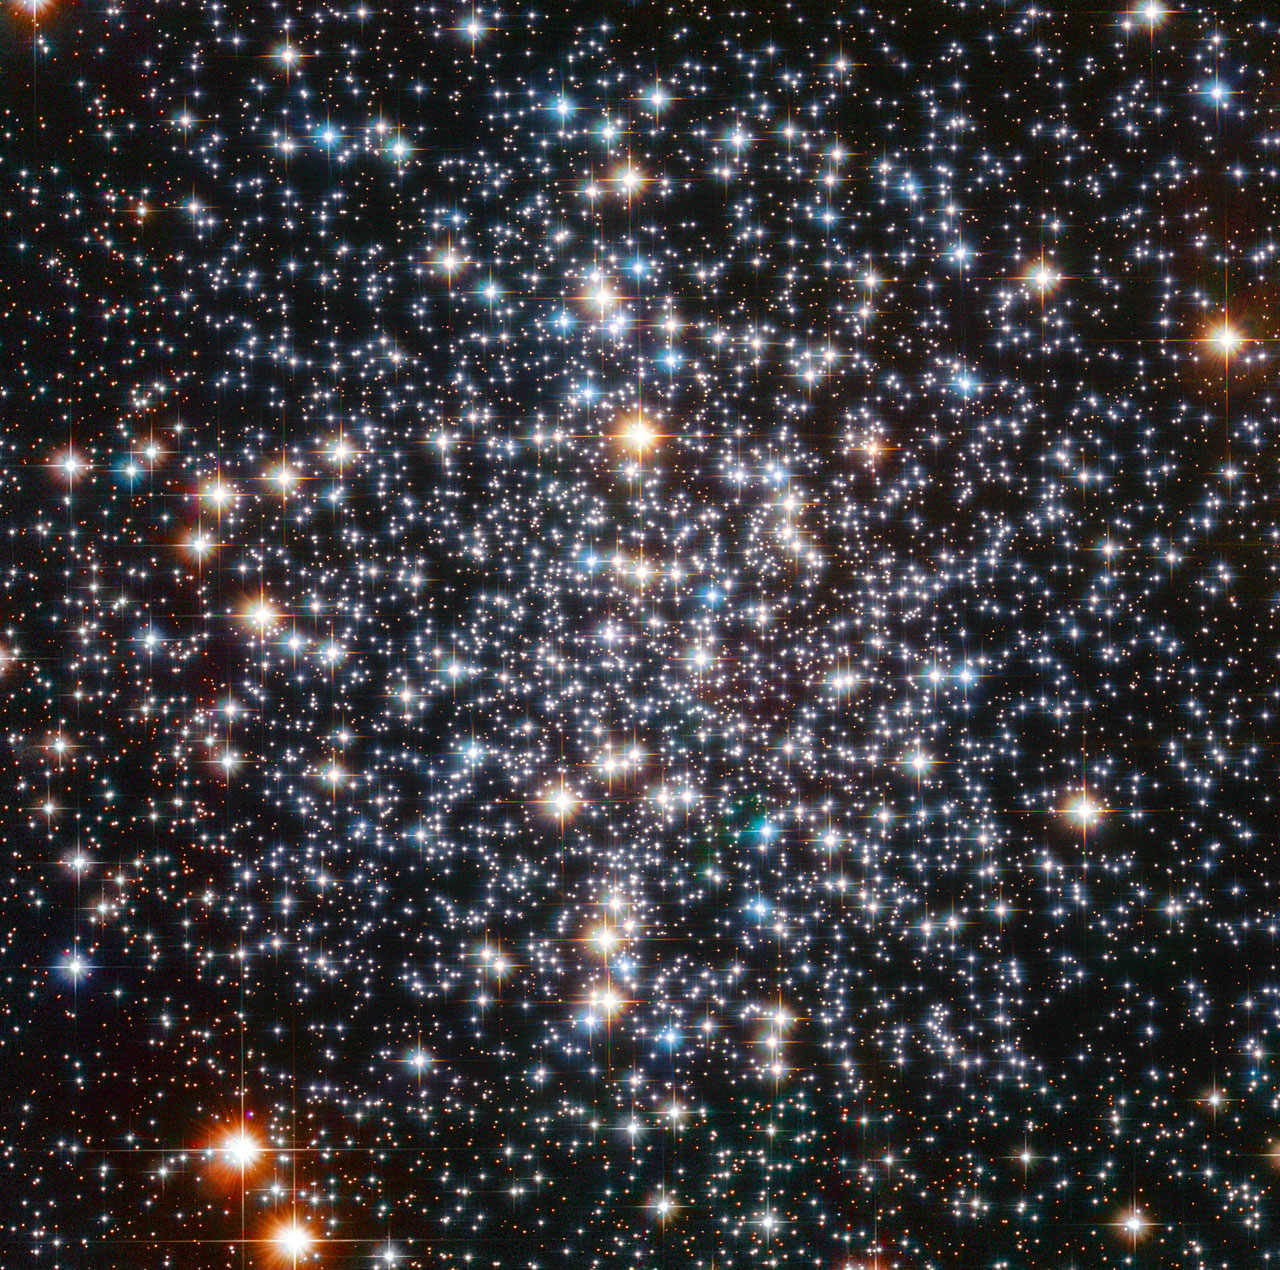 hubble space telescope star 2 - photo #40